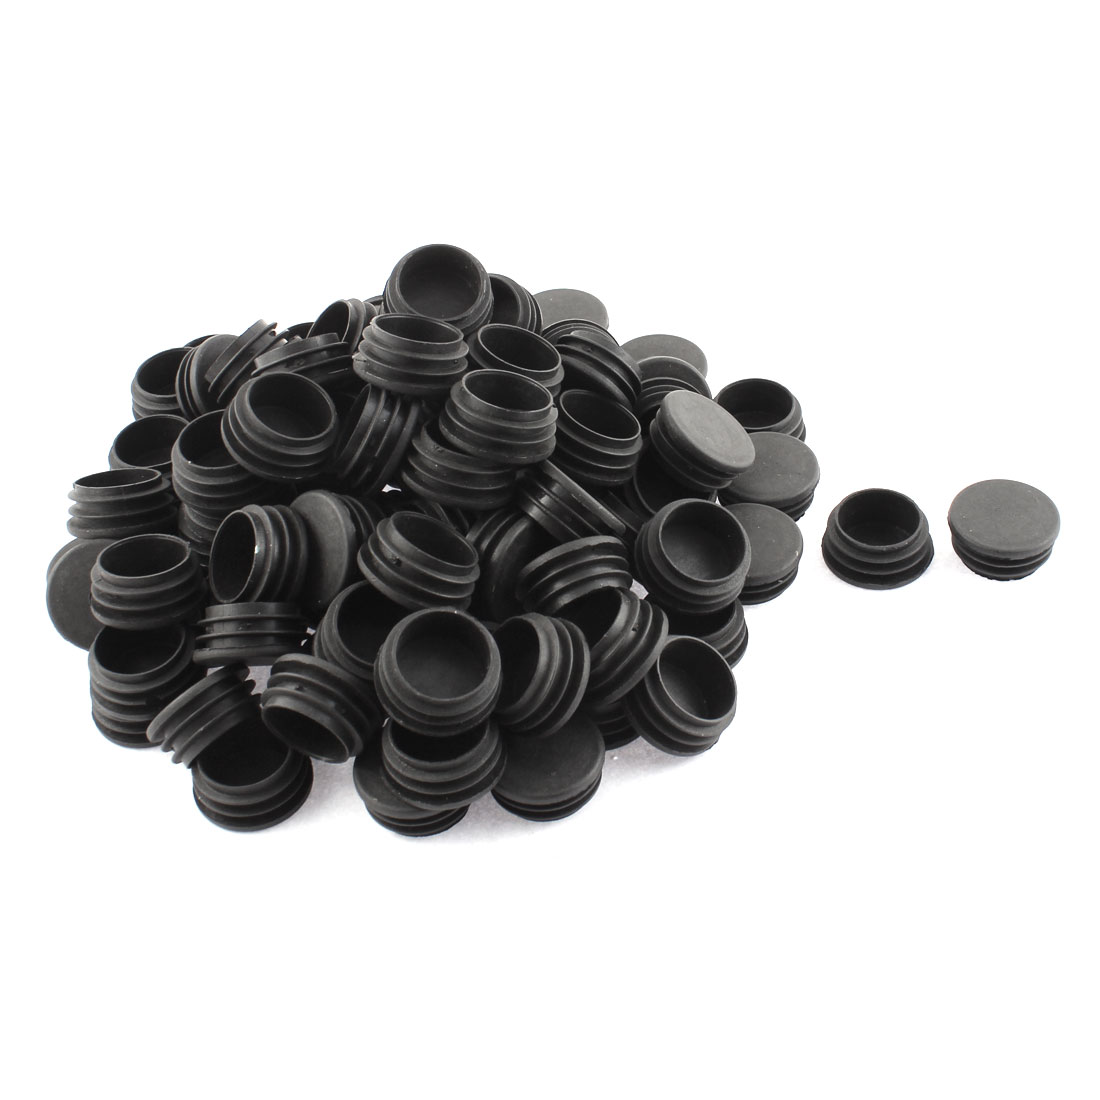 Plastic Round Blanking End Tube Caps Cover Inserts 29mm Dia 100pcs